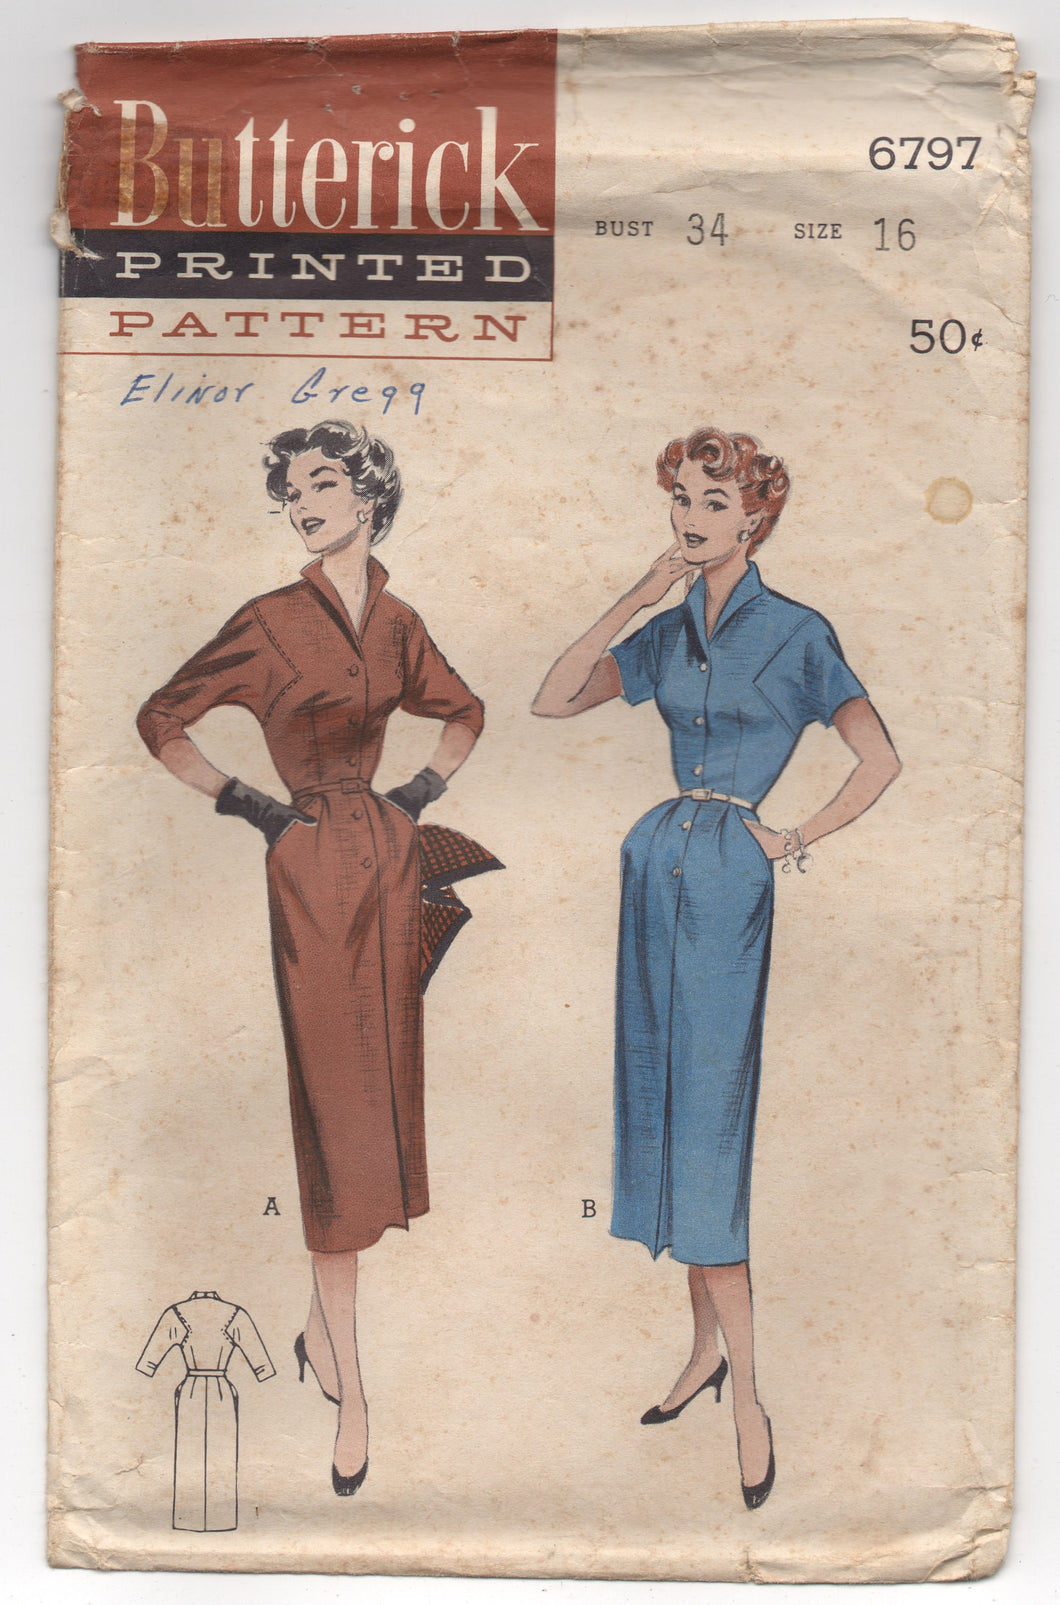 1950's Butterick One Piece Wiggle Dress with Inset Sleeves - Bust 34